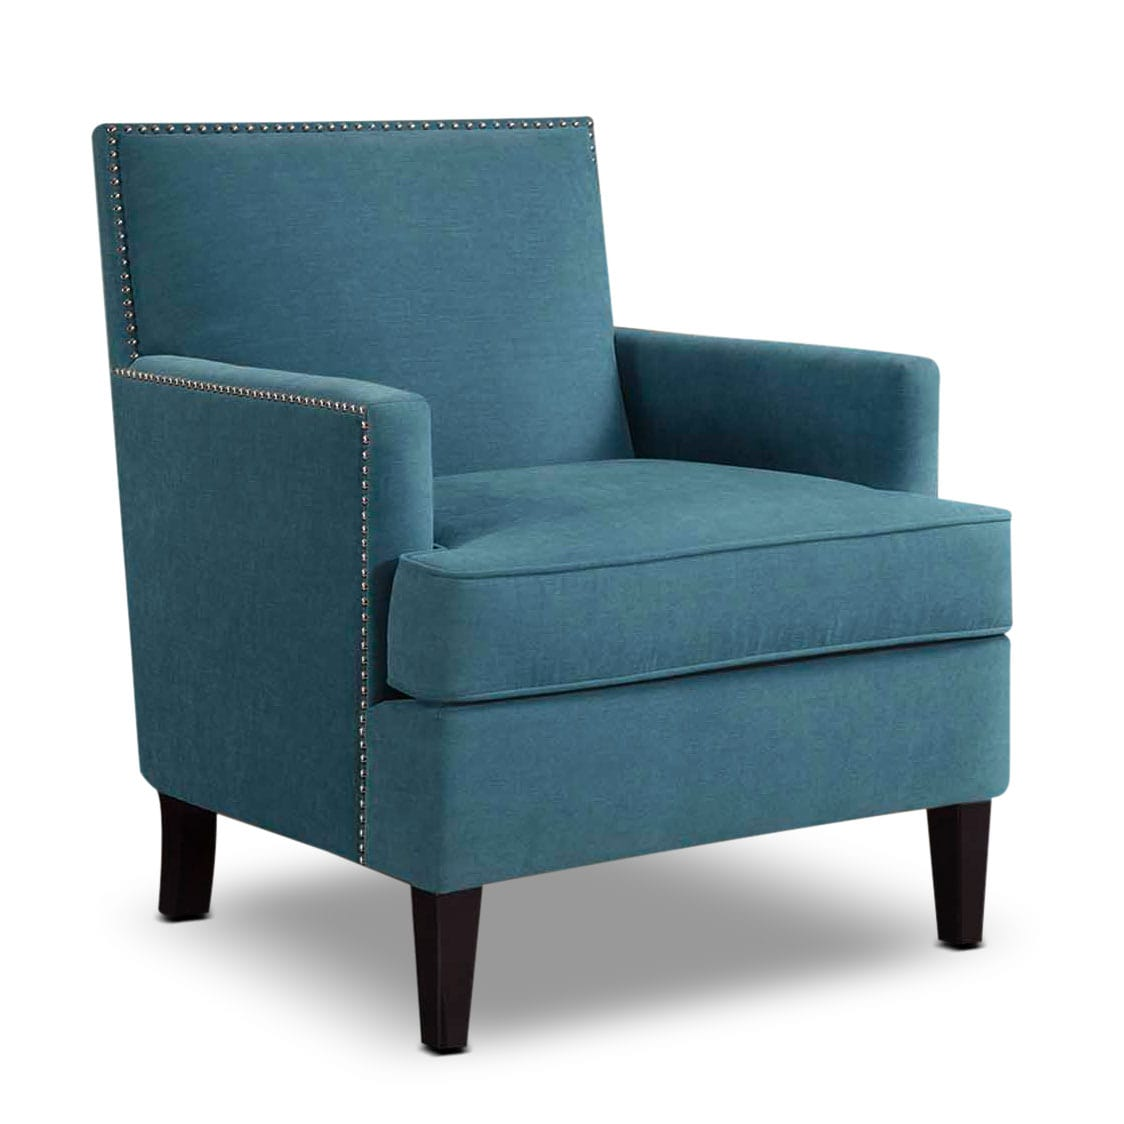 Astrid Accent Chair - Blue | Value City Furniture and Mattresses